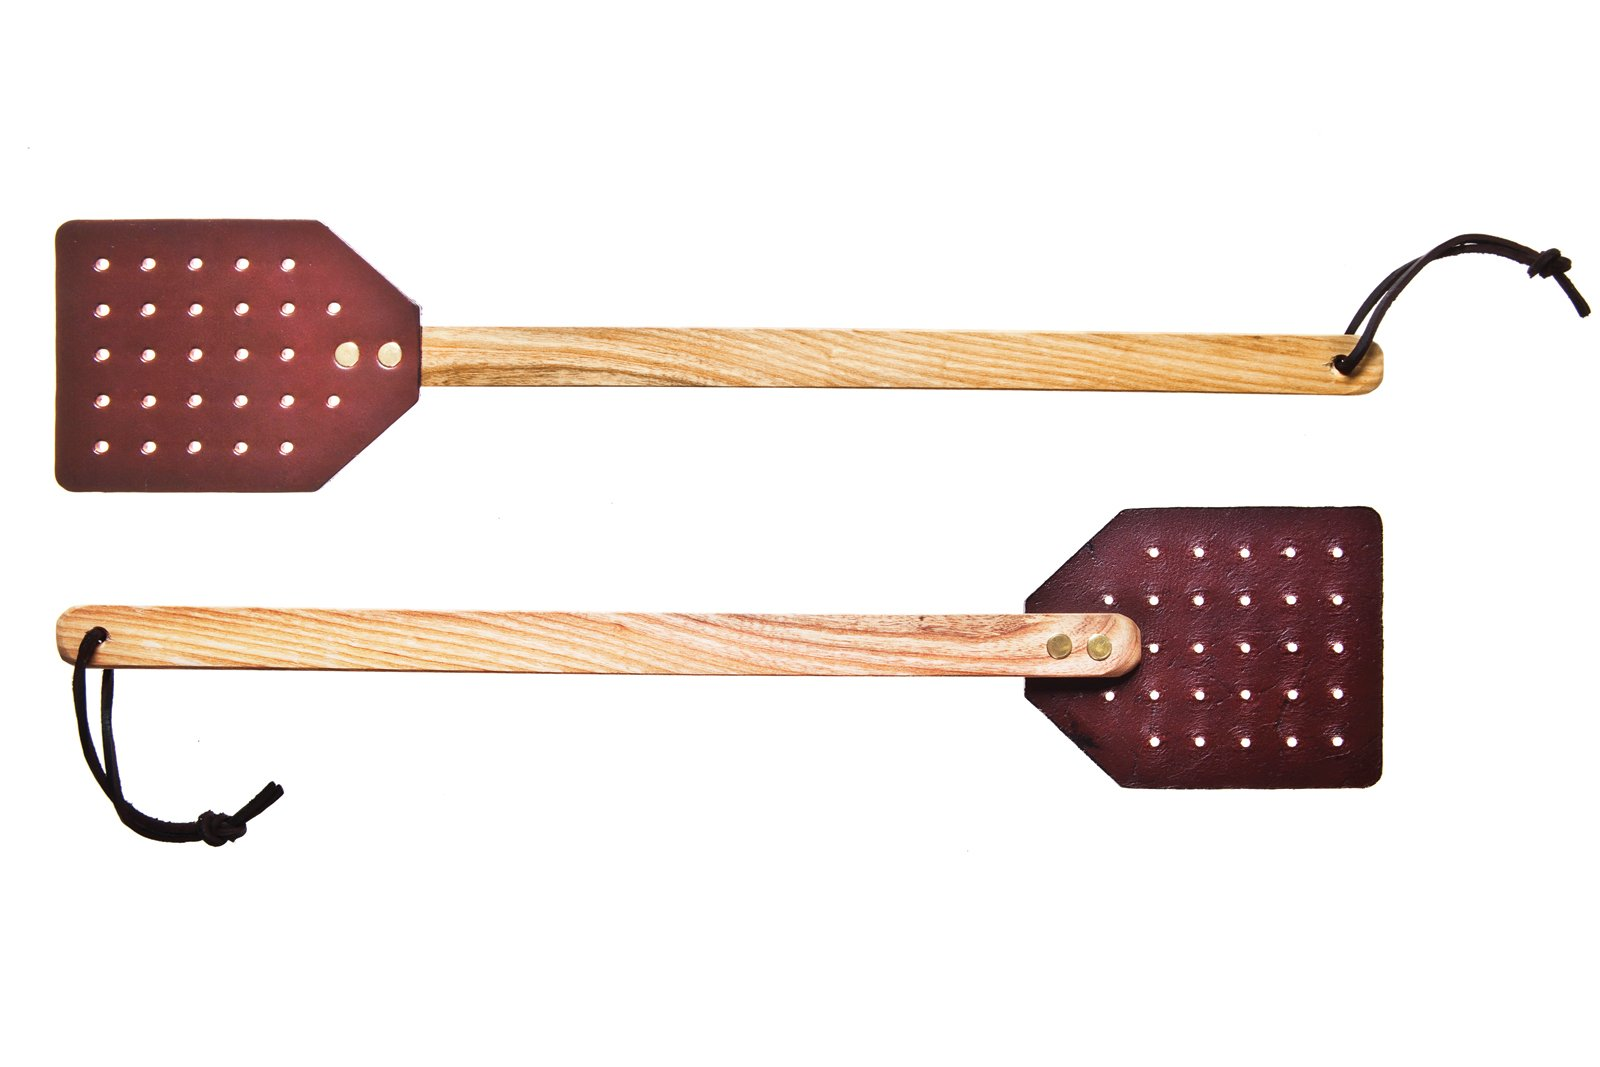 """Leather fly swatter by Dennis Knight for Kaufmann Mercantile  $14 Handmade from leather and ash wood by an Ohio-based Amish craftsman who learned his craft in a colonial Williamsburg saddle shop.  Search """"where pigs fly"""" from Made in America: 7 Great Products from the Midwest"""